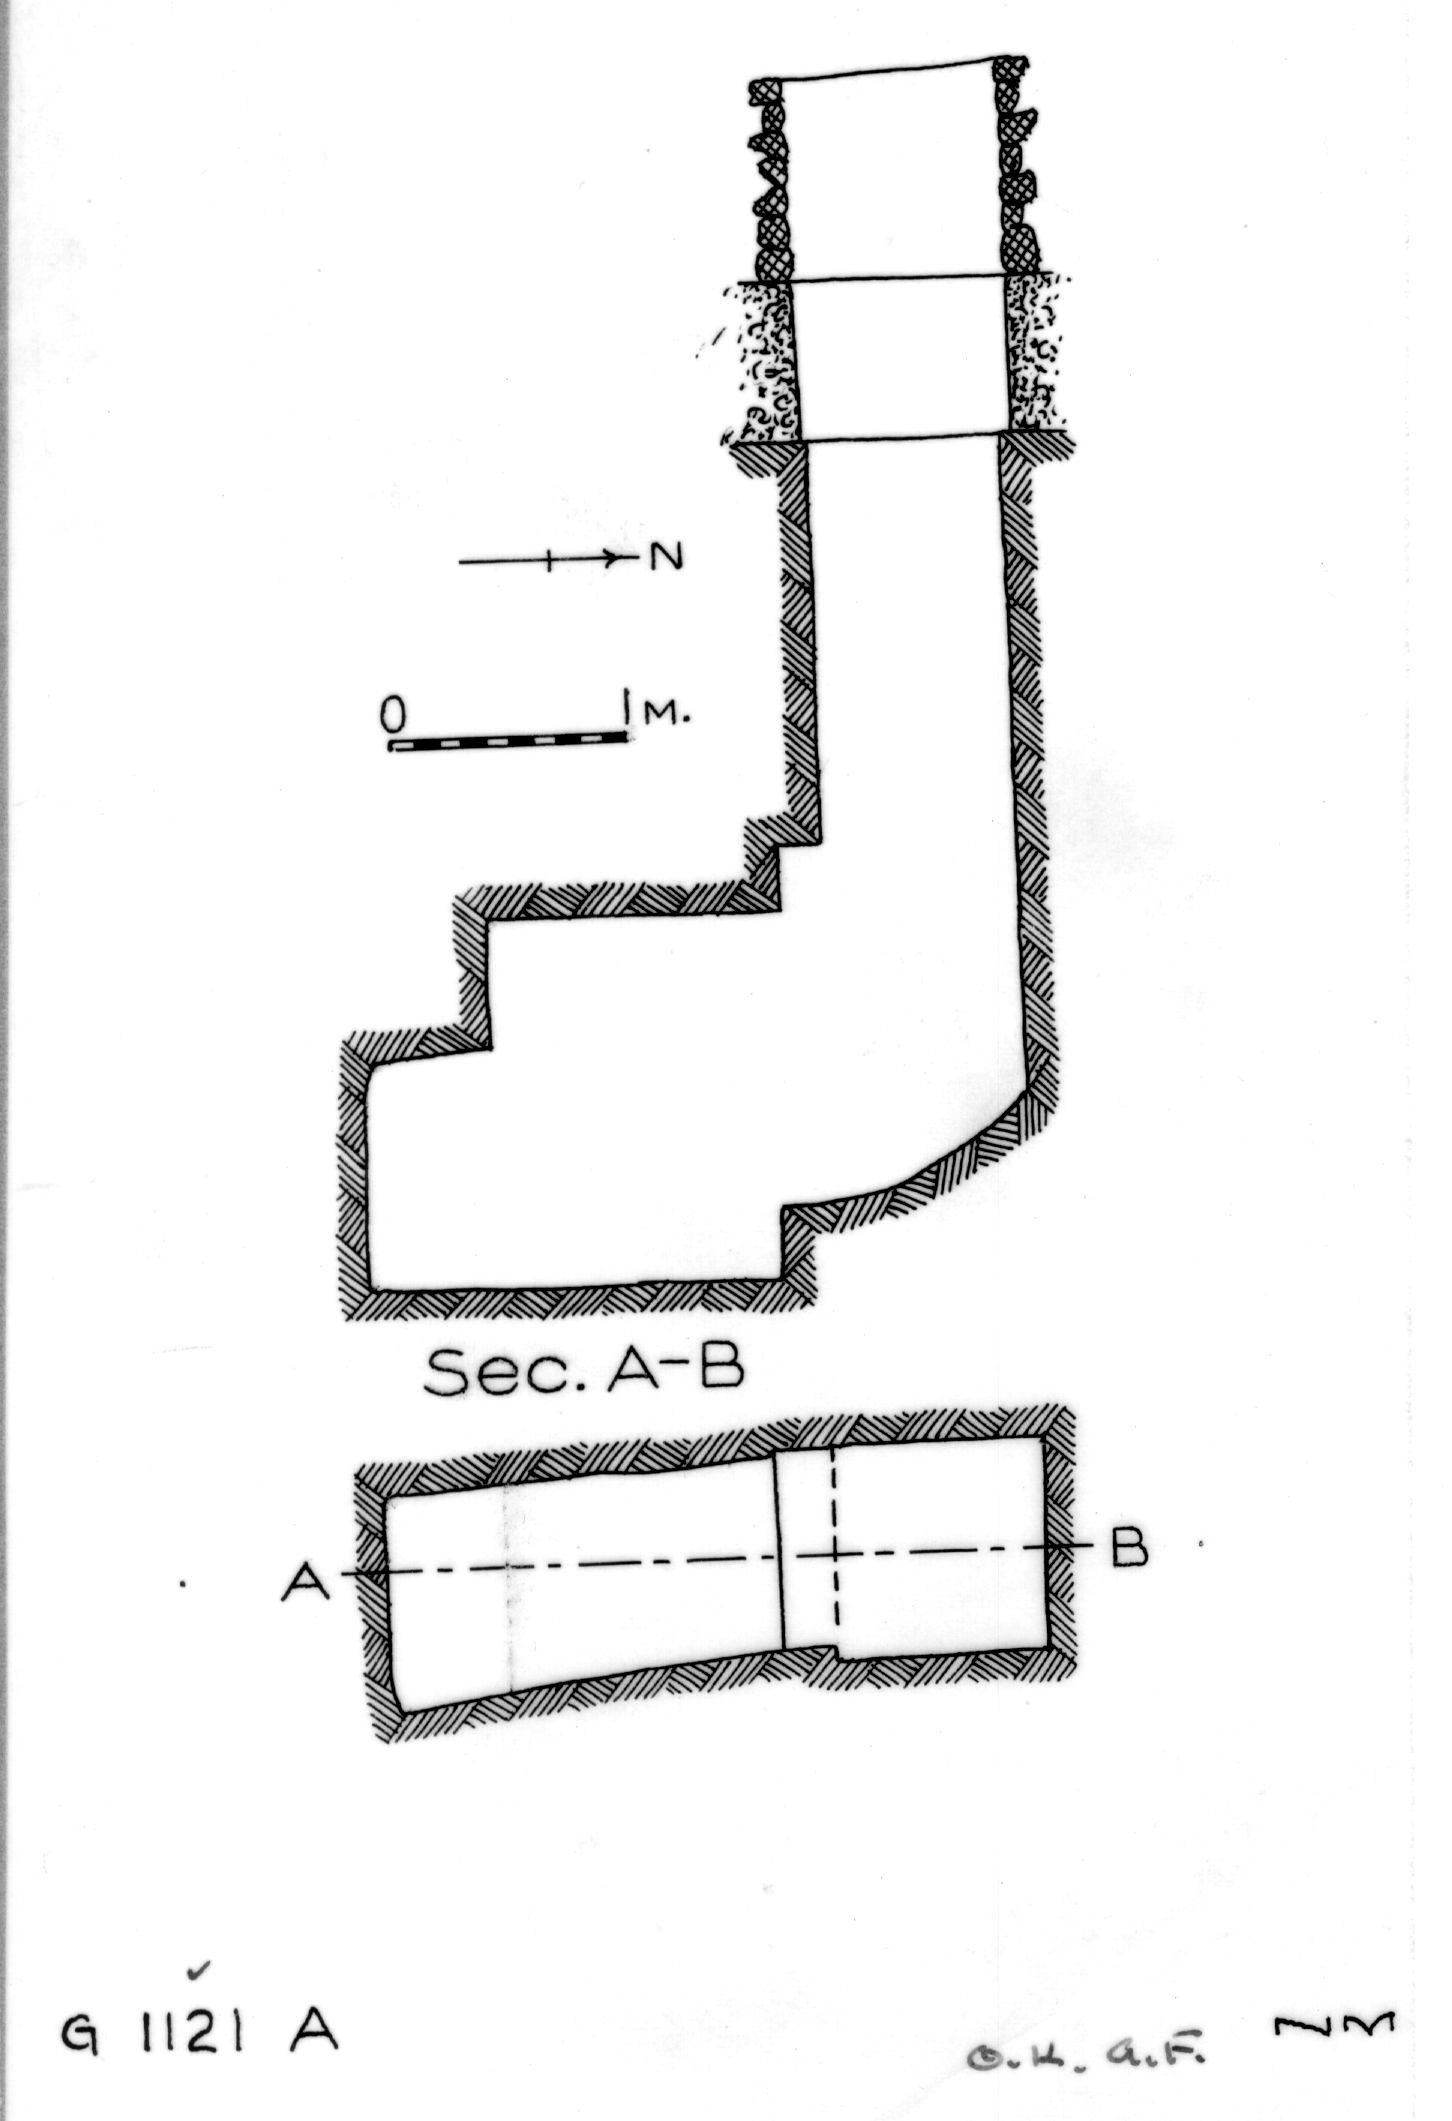 Maps and plans: G 1121, Shaft A